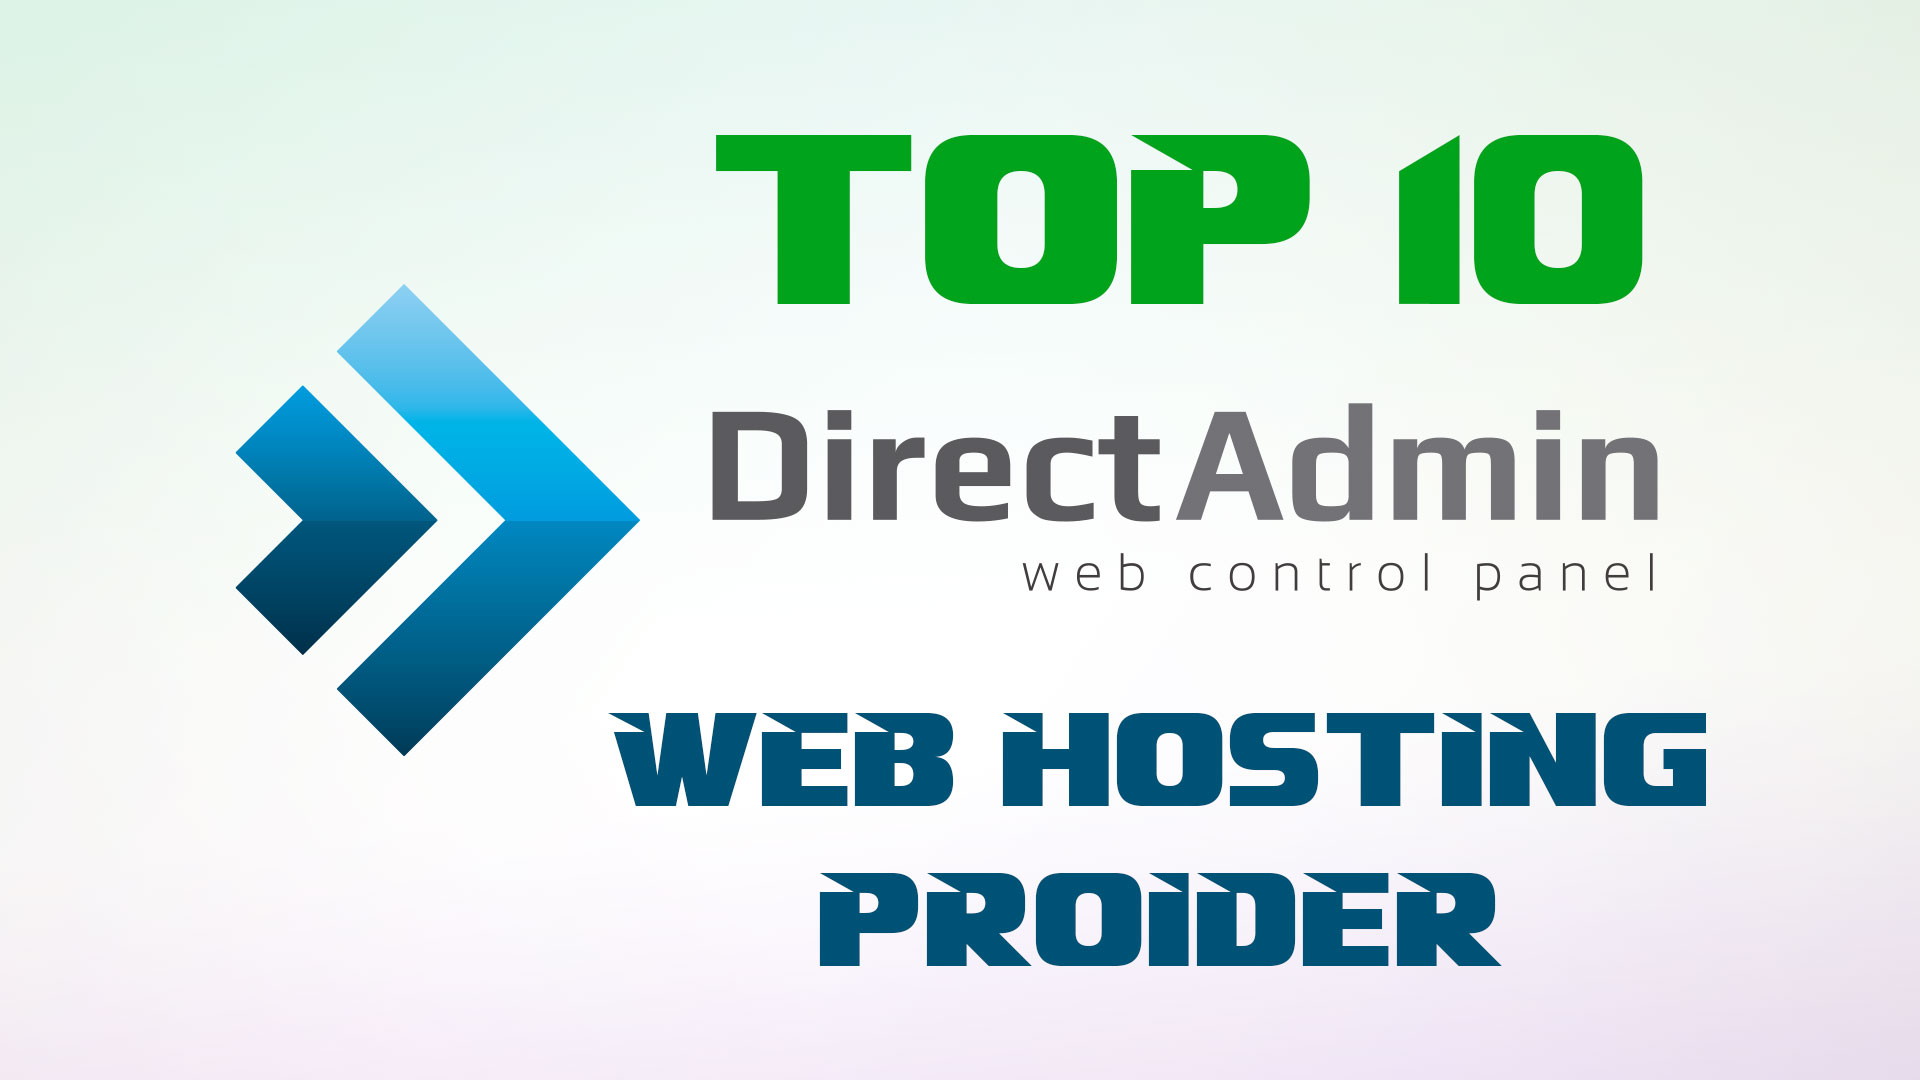 Top 10 DirectAdmin Web Hosting Provider In World